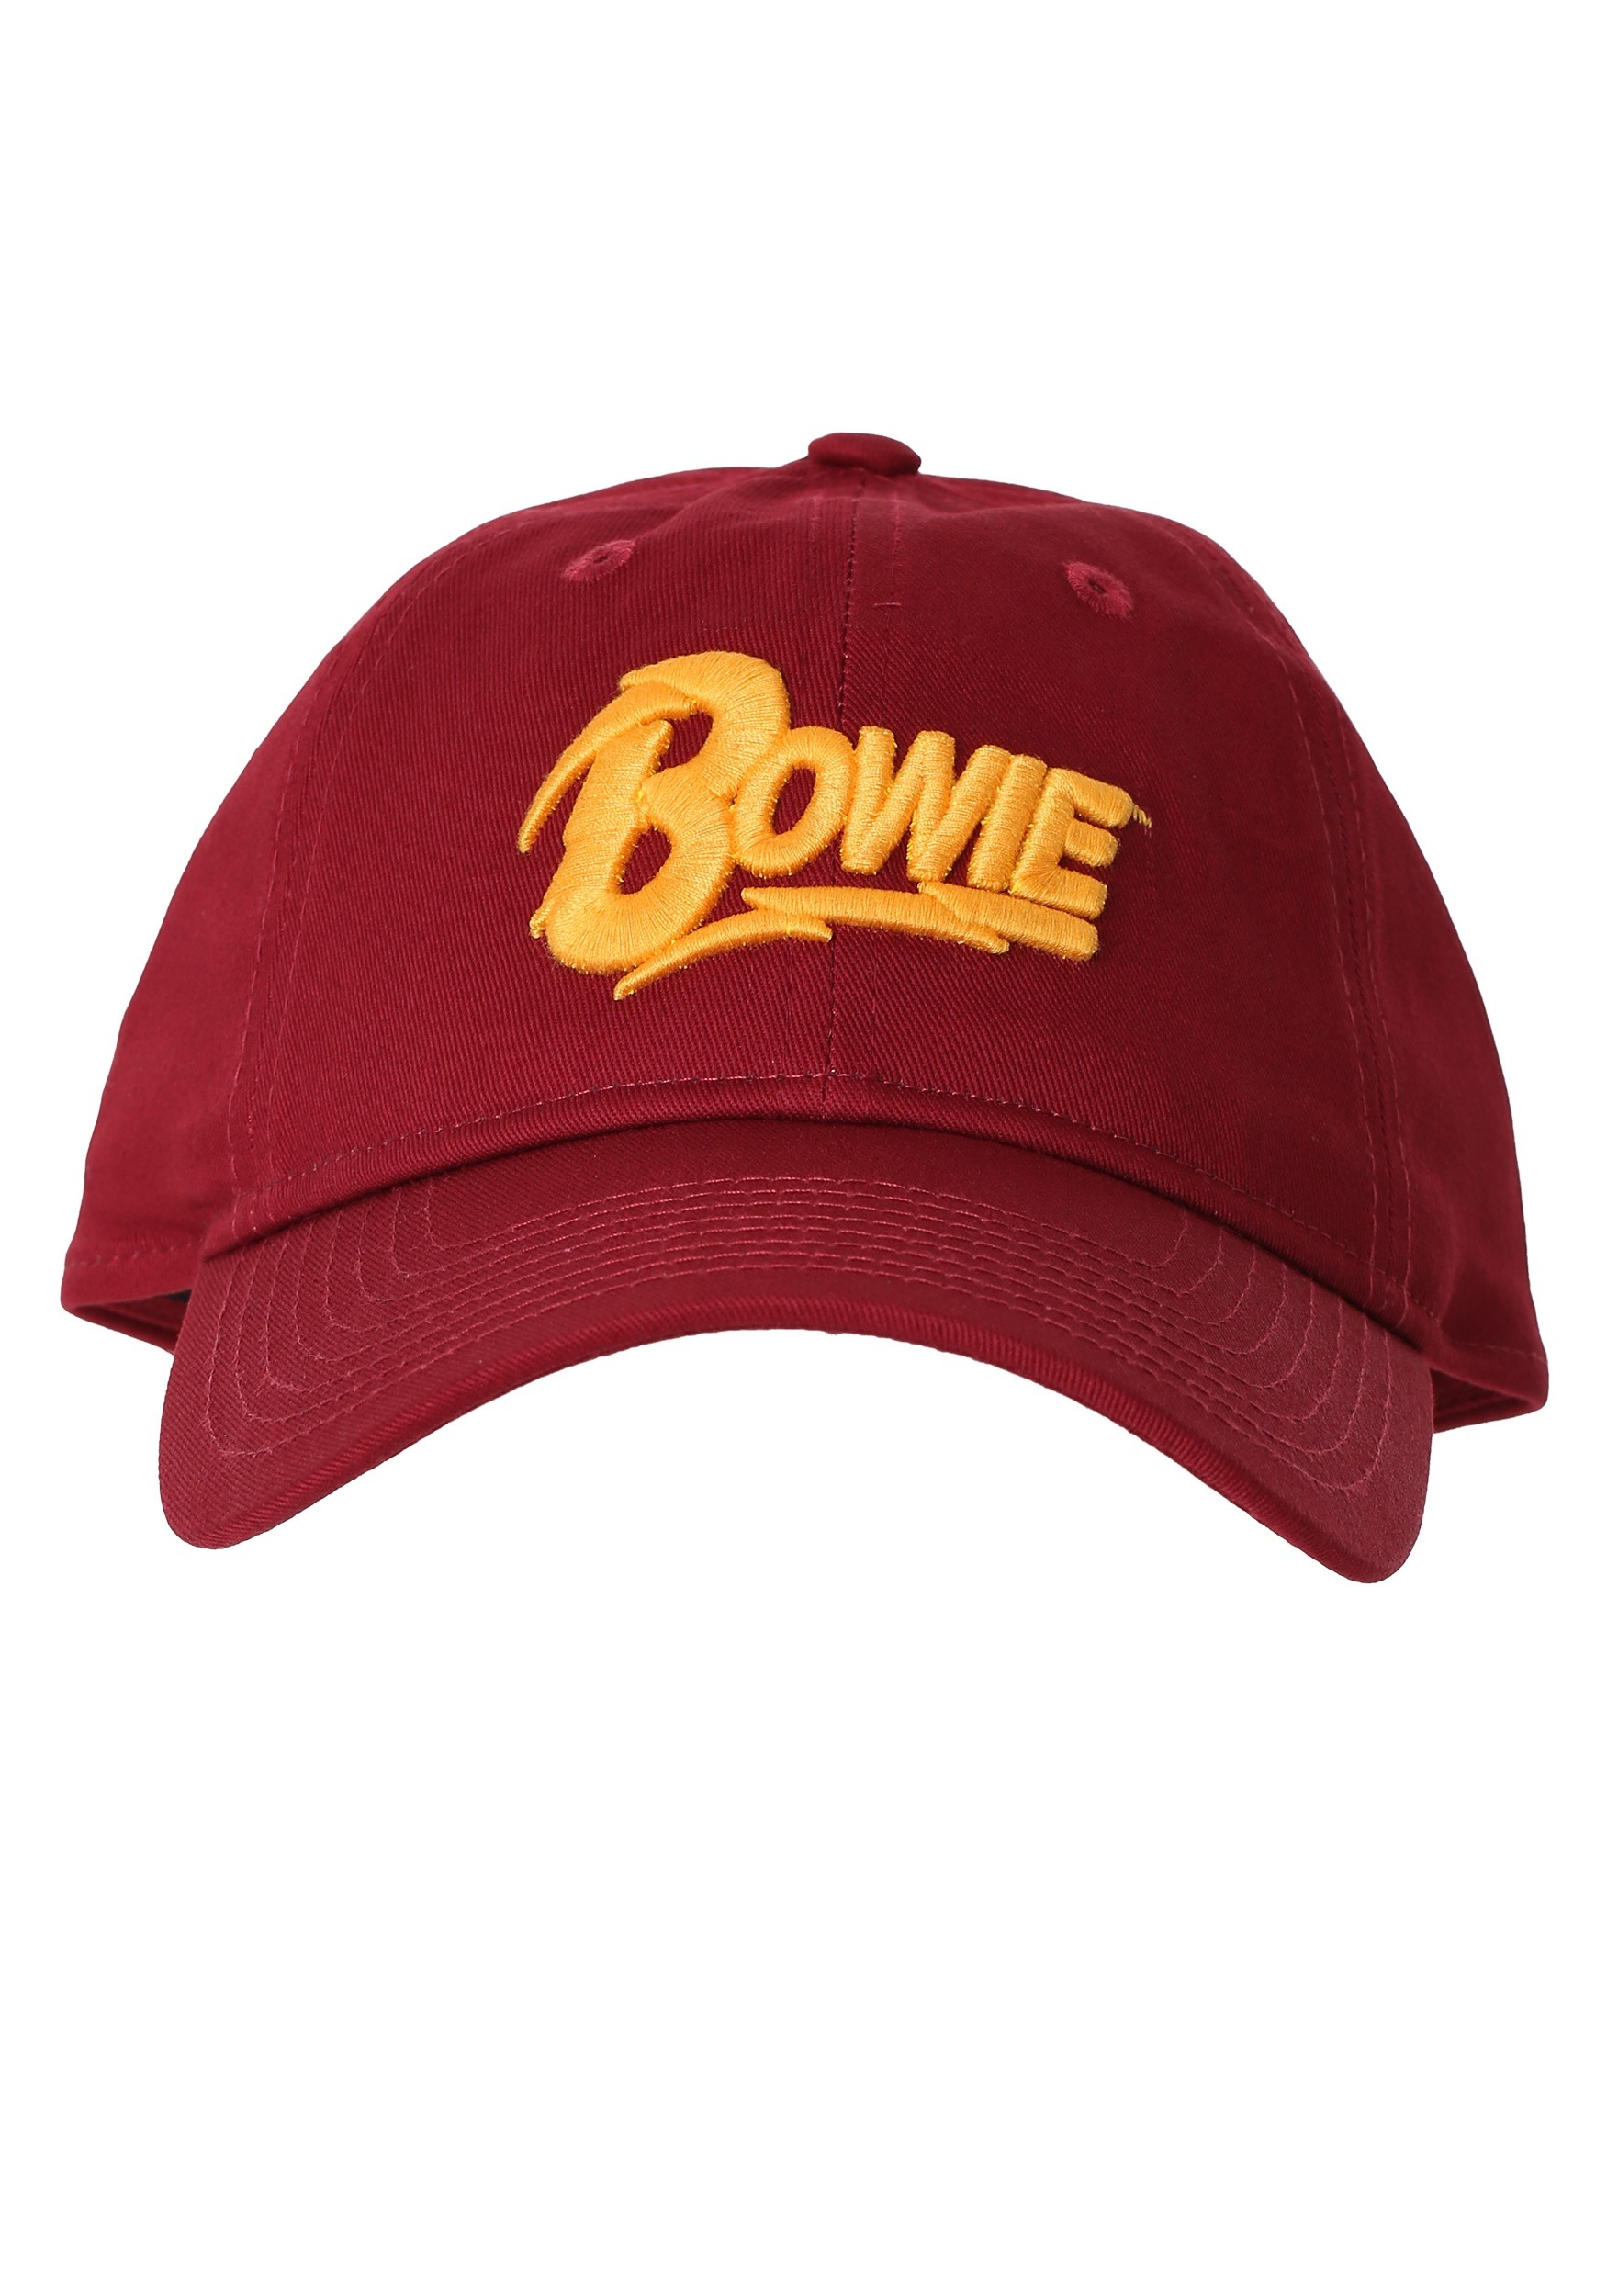 David Bowie Logo Red Dad Hat